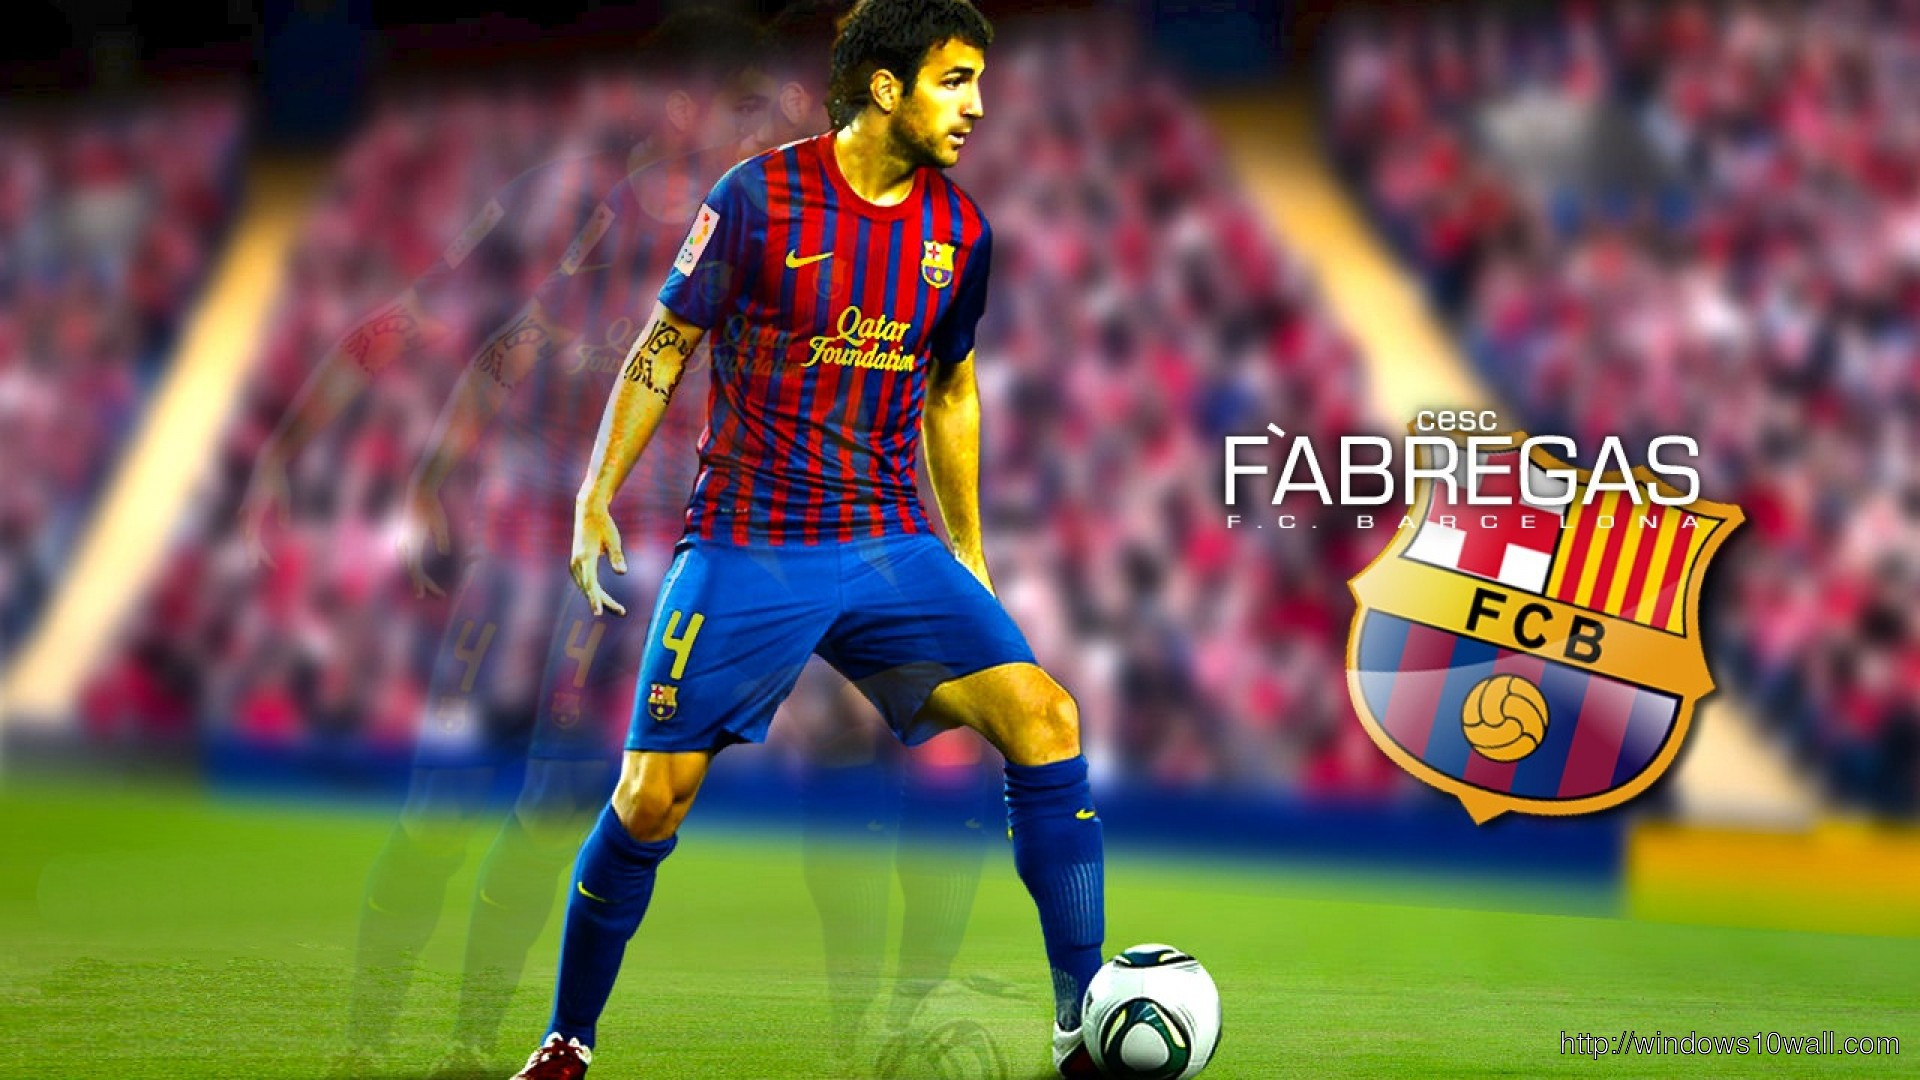 Cesc Fabregas Barcelona Background Wallpaper